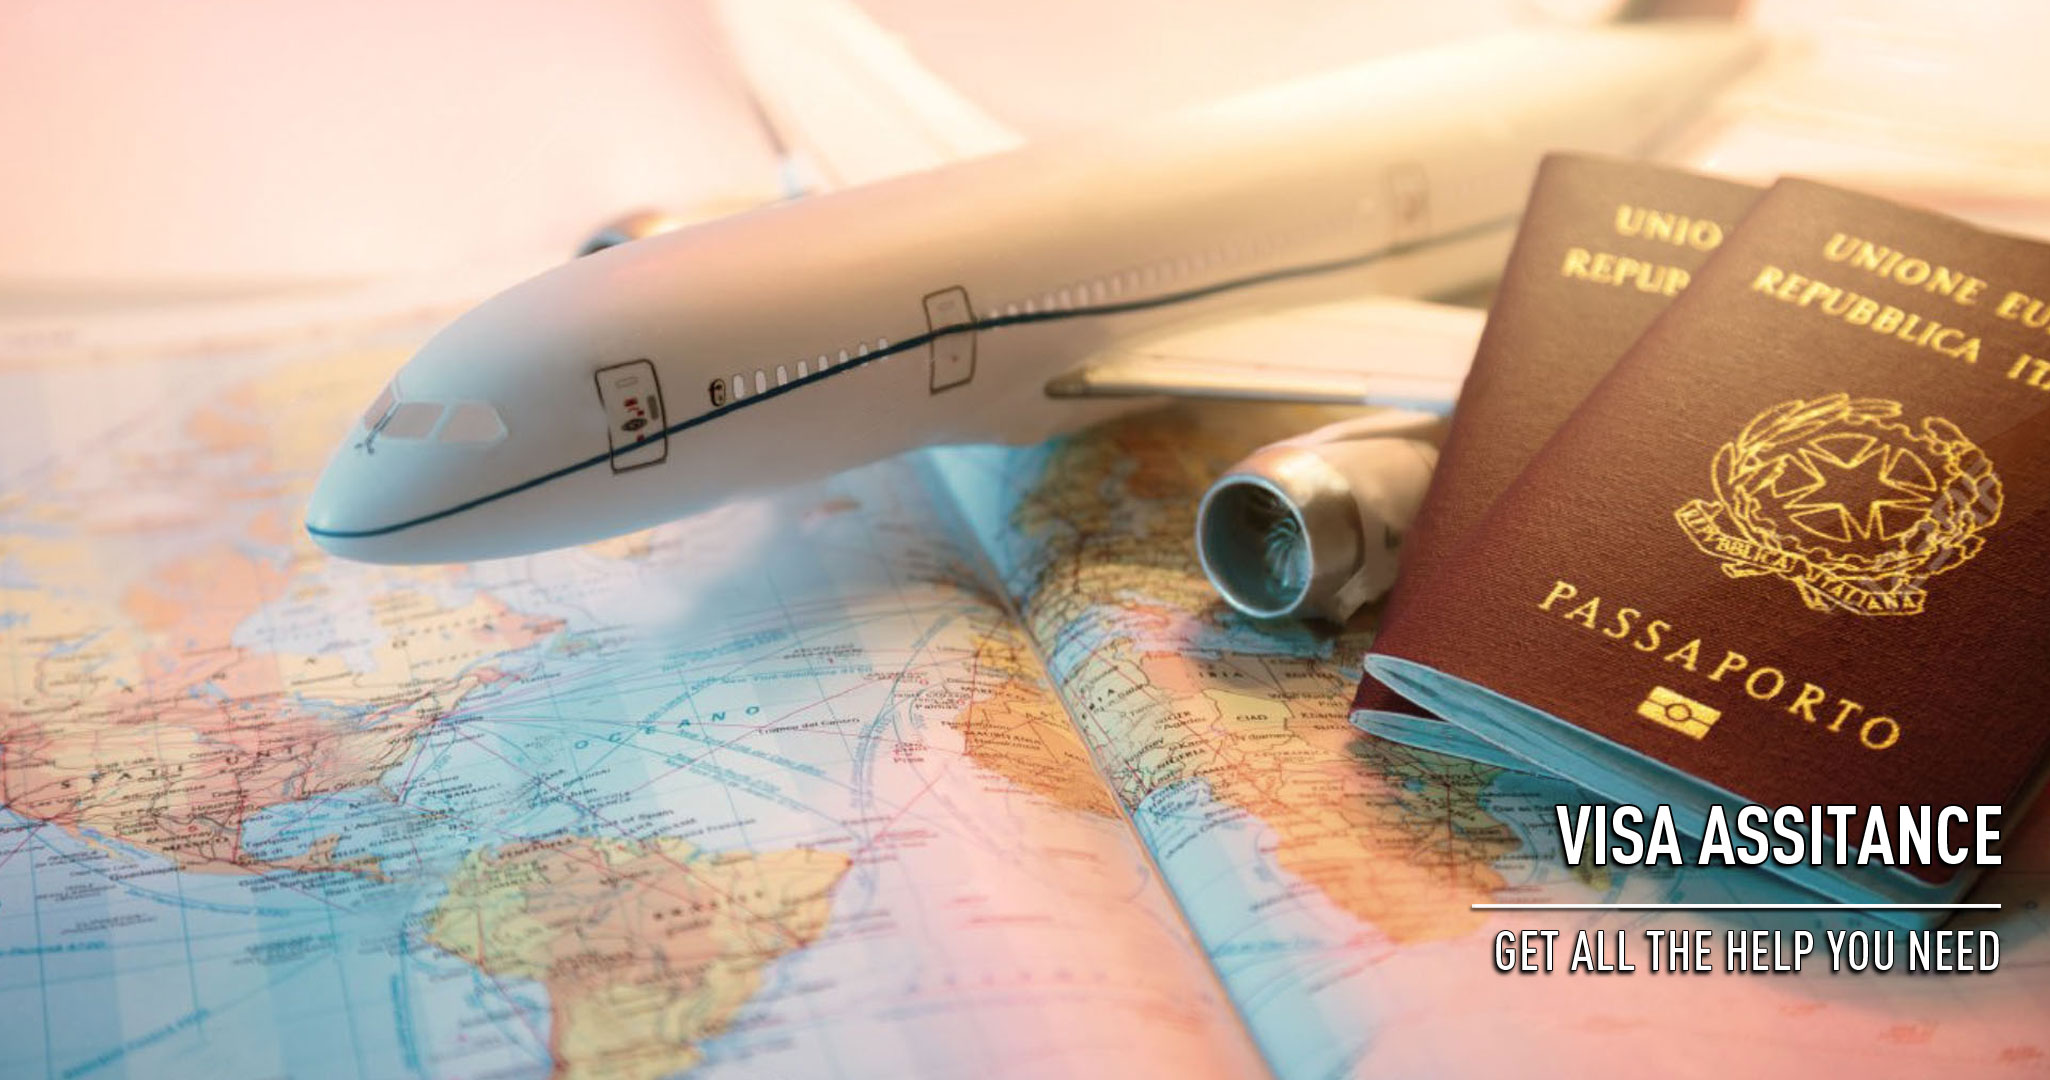 Special Thomas cook group offers